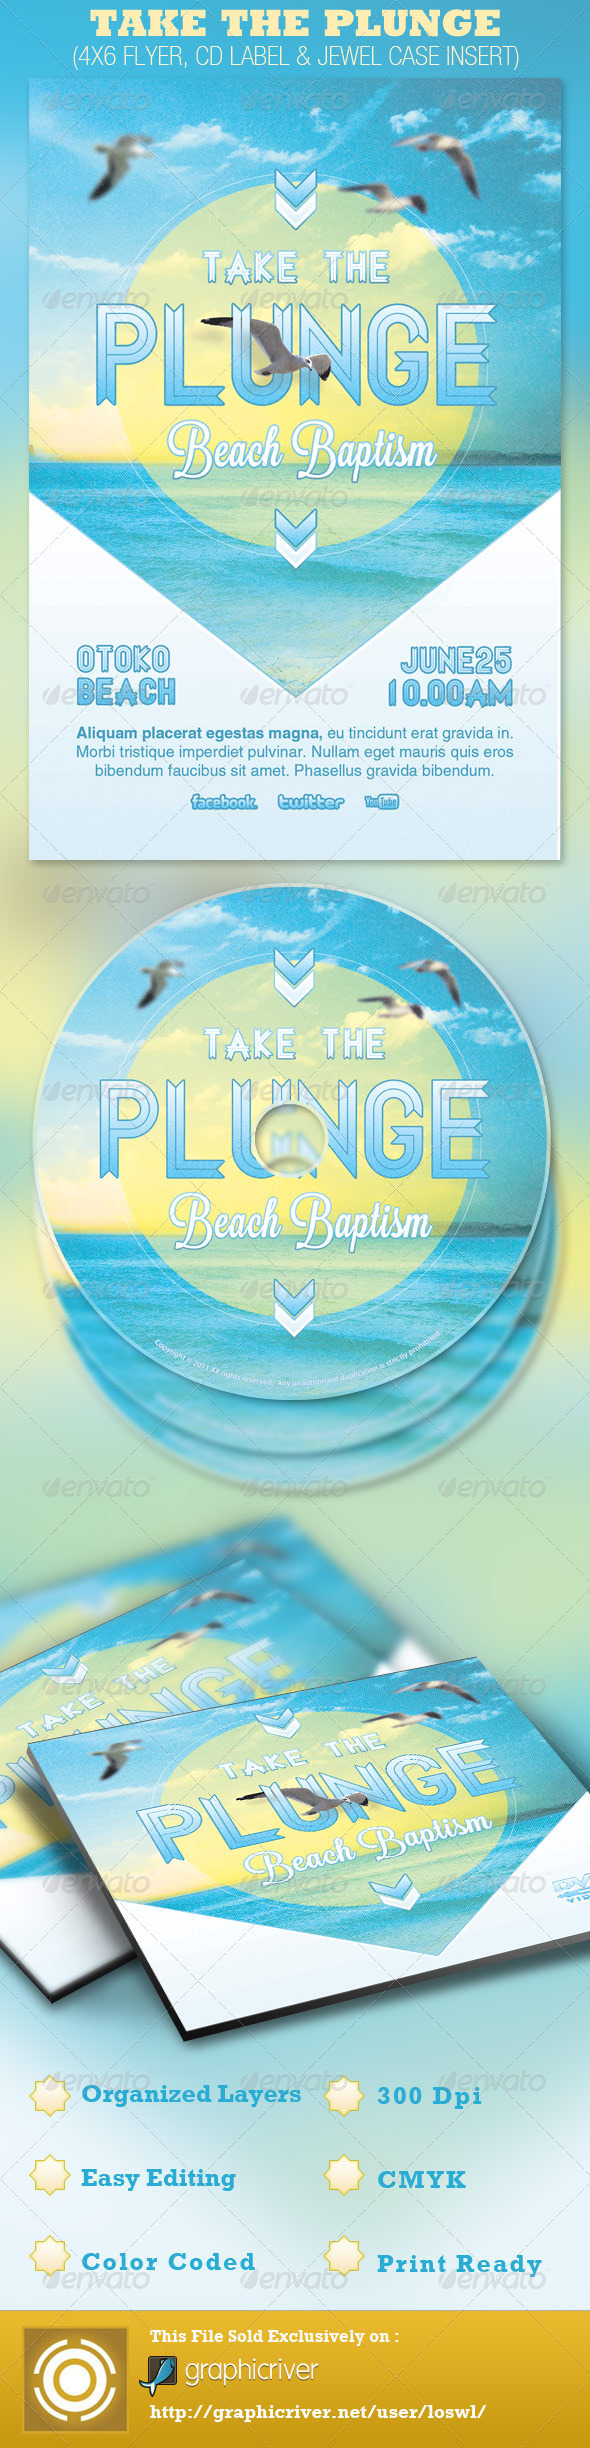 Take the Plunge Church Flyer and CD Template - Church Flyers